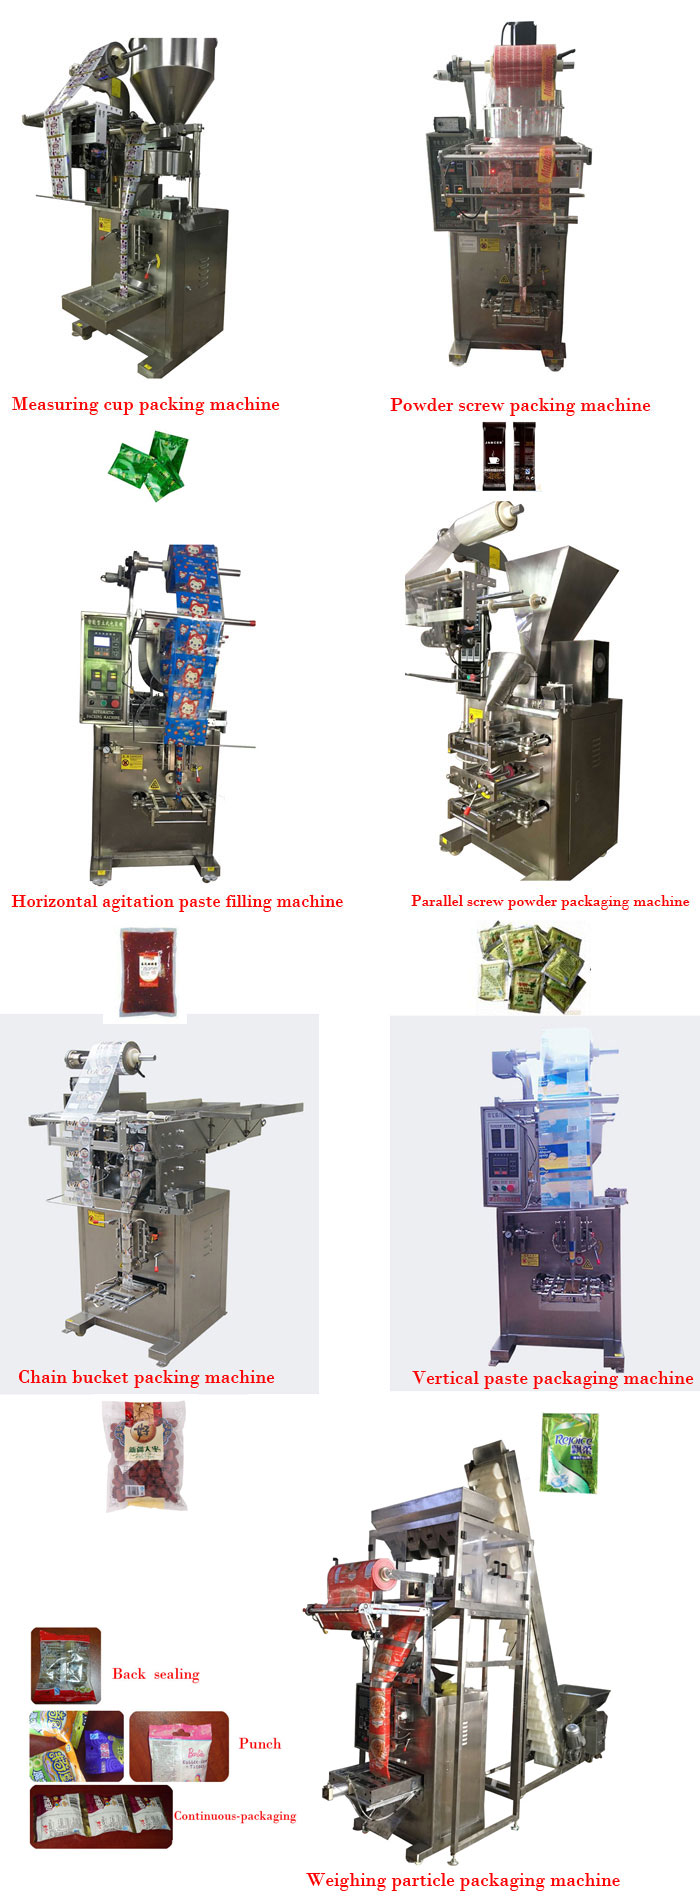 Automatic particle packaging machine for peanut/chin chin bag with punching